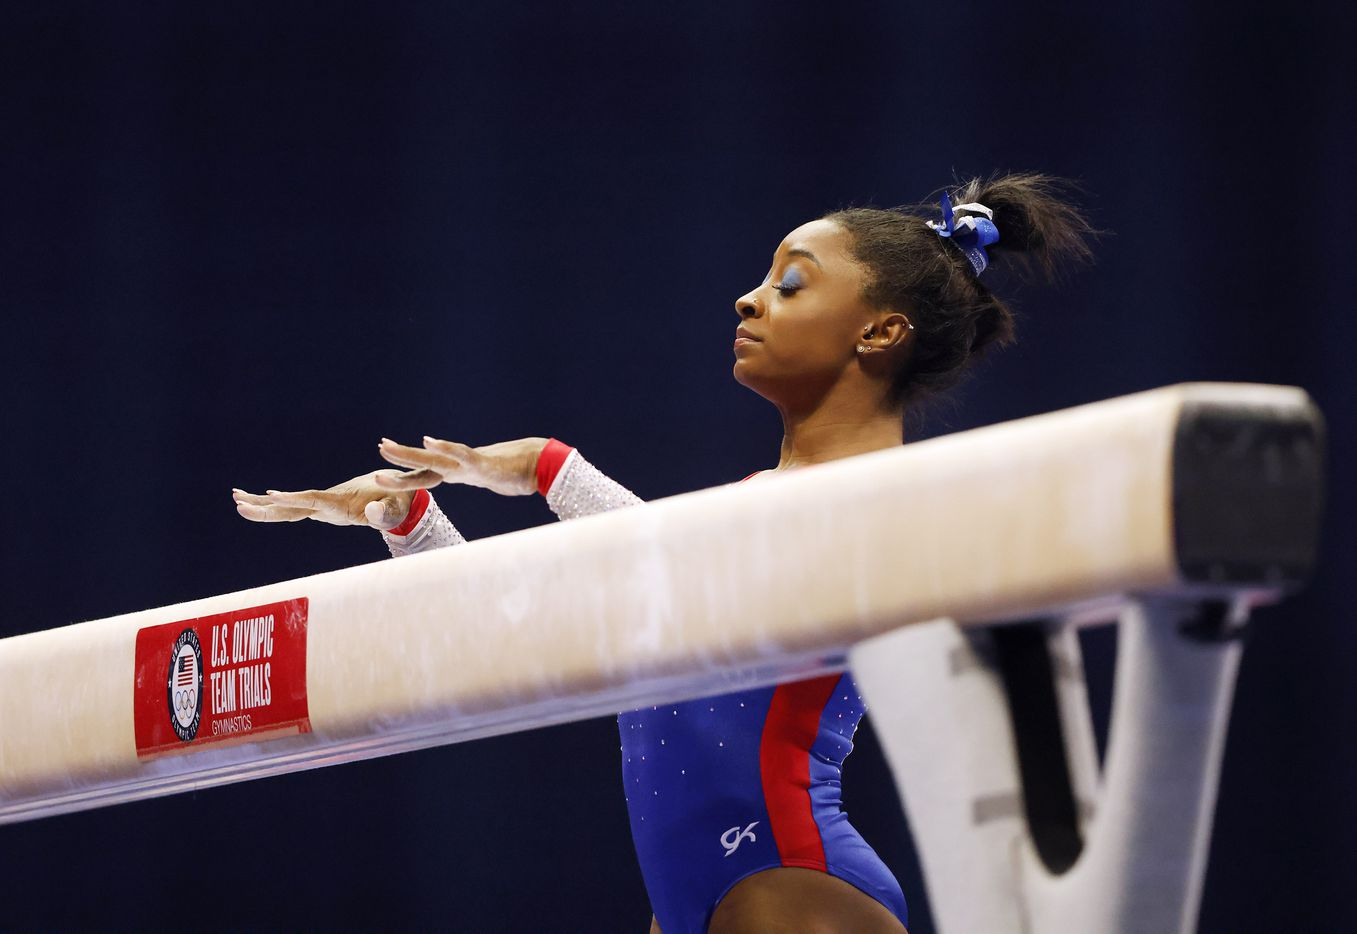 Simone Biles of World Champions competes in balance beam during day 1 of the women's 2021 U.S. Olympic Trials at America's Center on Friday, June 25, 2021 in St Louis, Missouri.(Vernon Bryant/The Dallas Morning News)